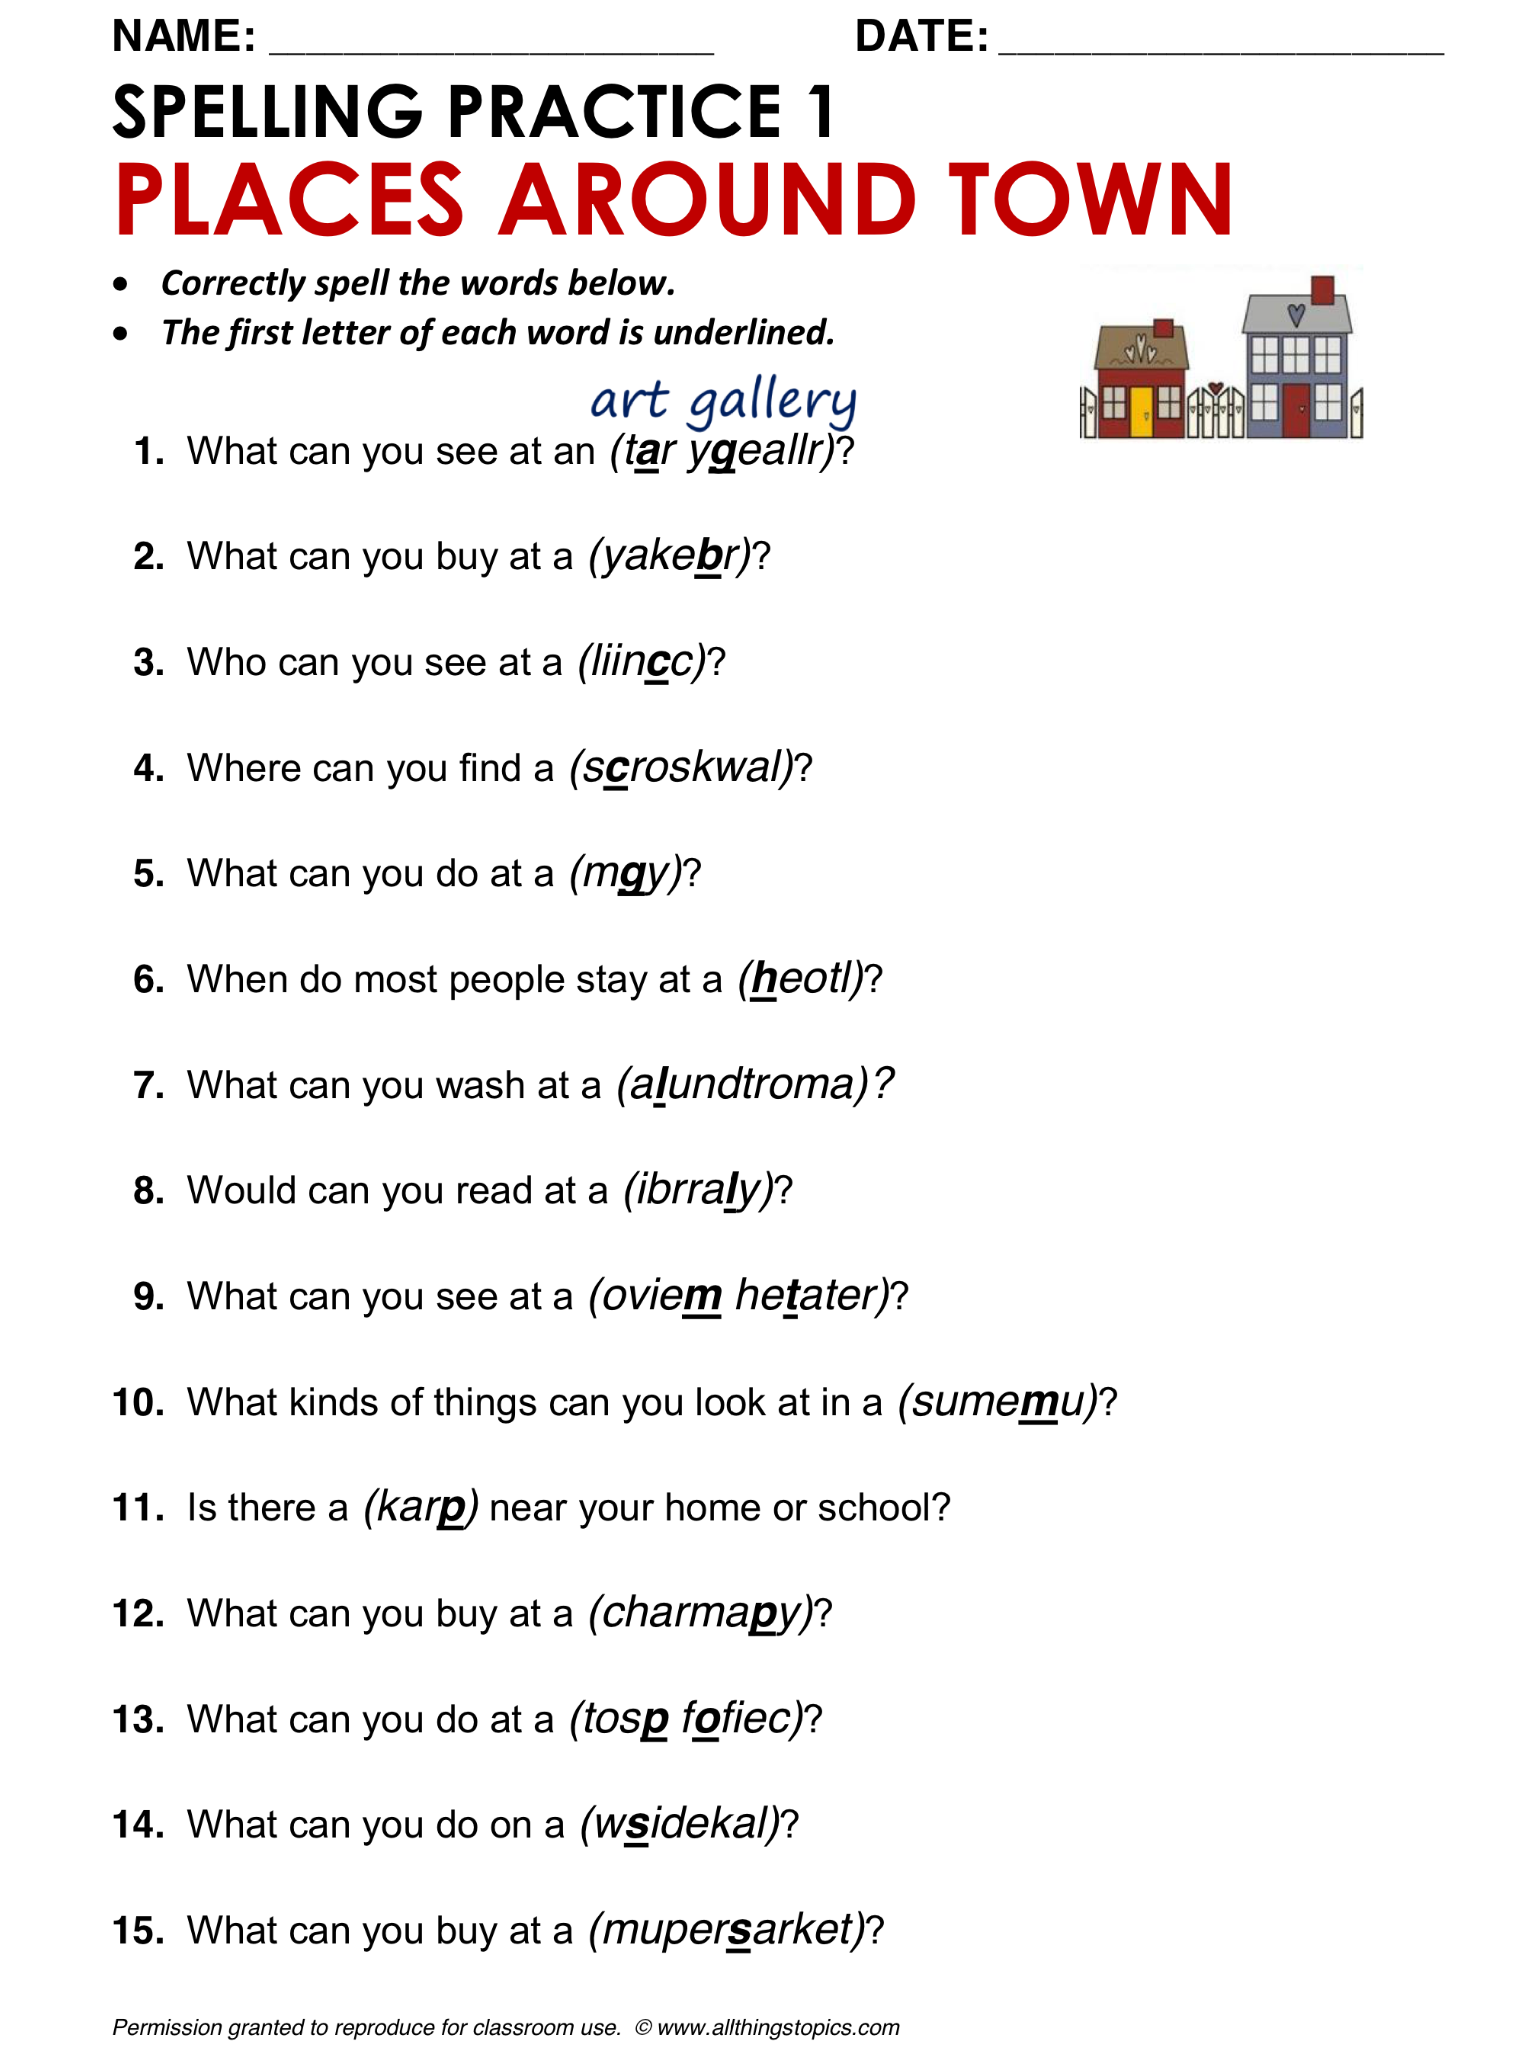 worksheet Spelling Rules Worksheets describing people spelling worksheet 1 speaking and vocab practice places around town english learning english